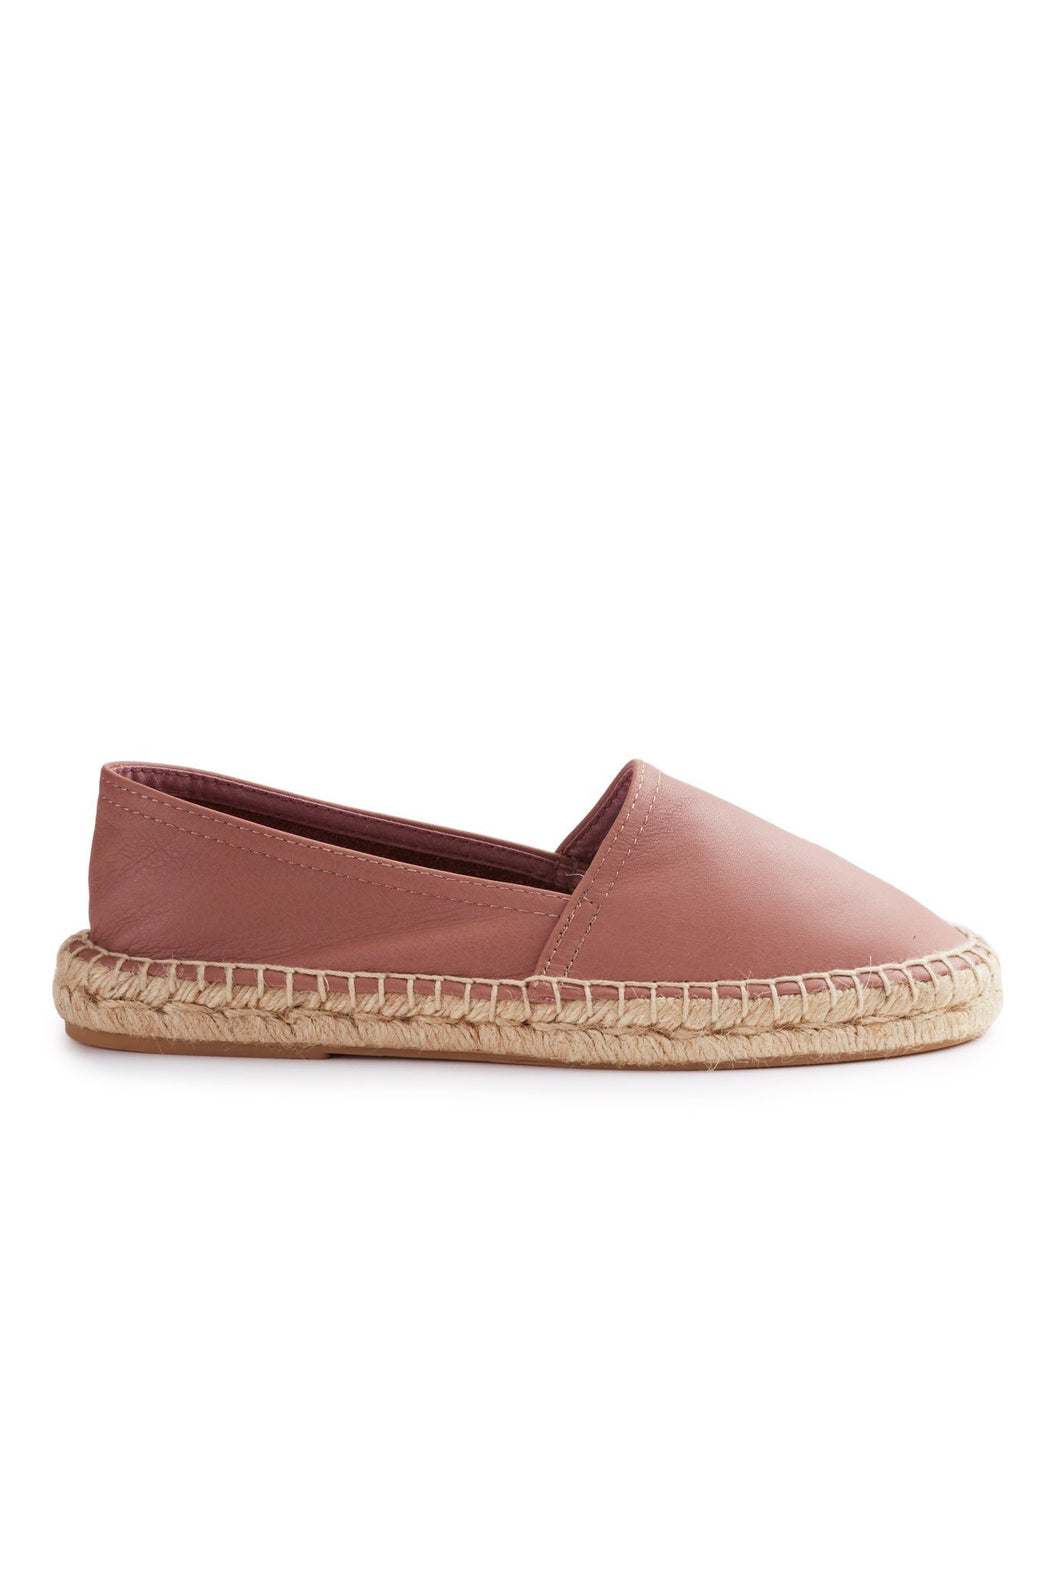 women's leather classic espadrille in vintage rose